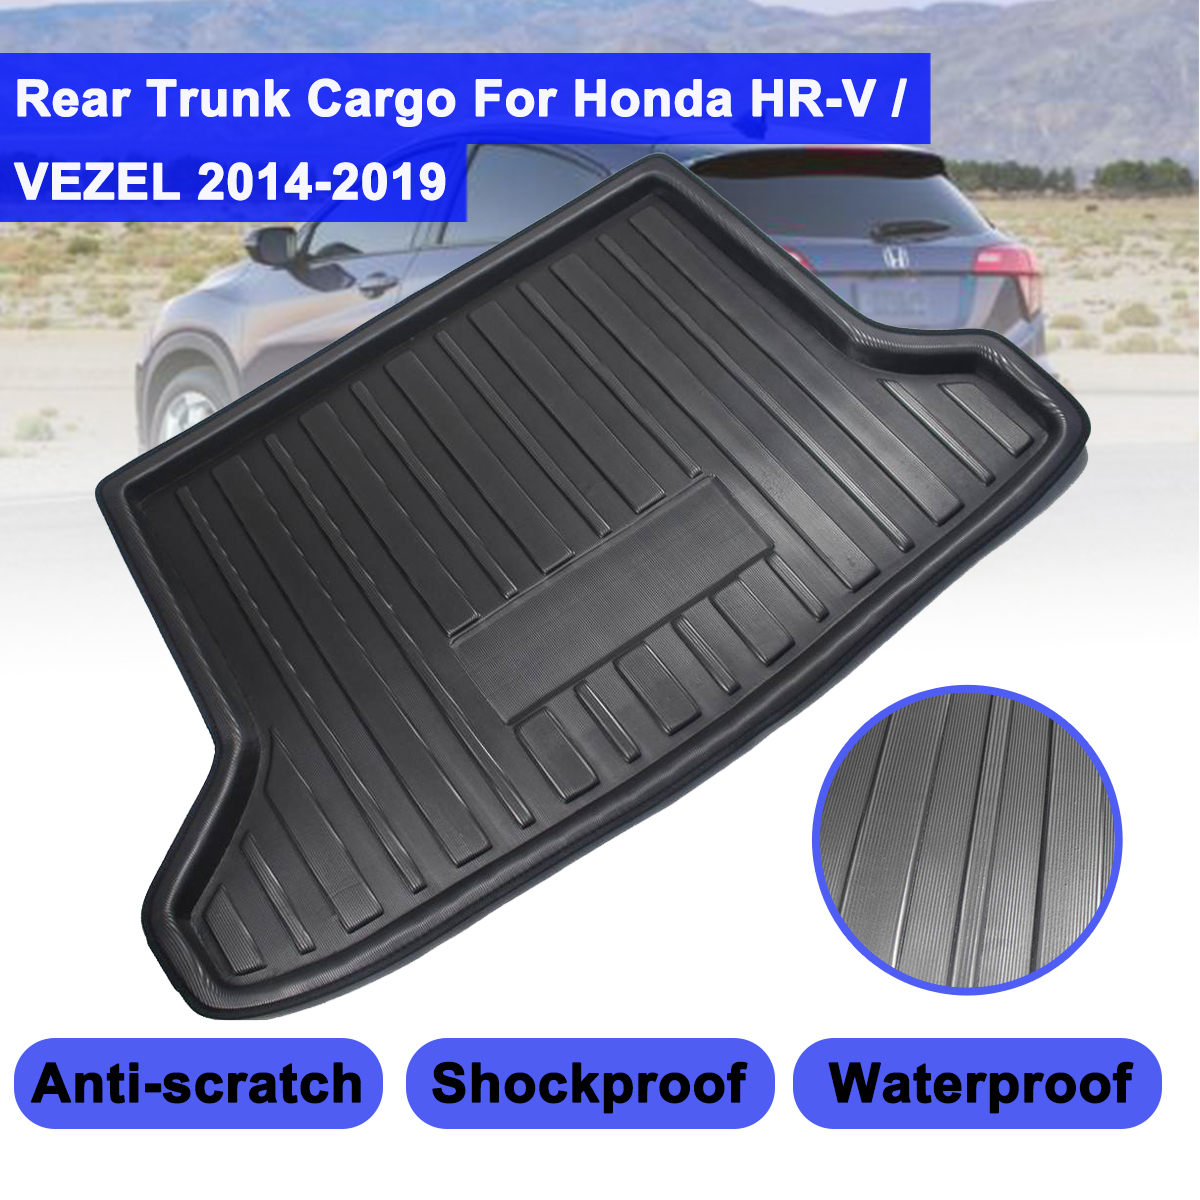 For Honda HR-V Vezel HRV 2014 -2019 Cargo Liner Boot Tray Rear Trunk Cover Matt Floor Carpet Mat Kick Pad Mud Non-slip Anti Dust